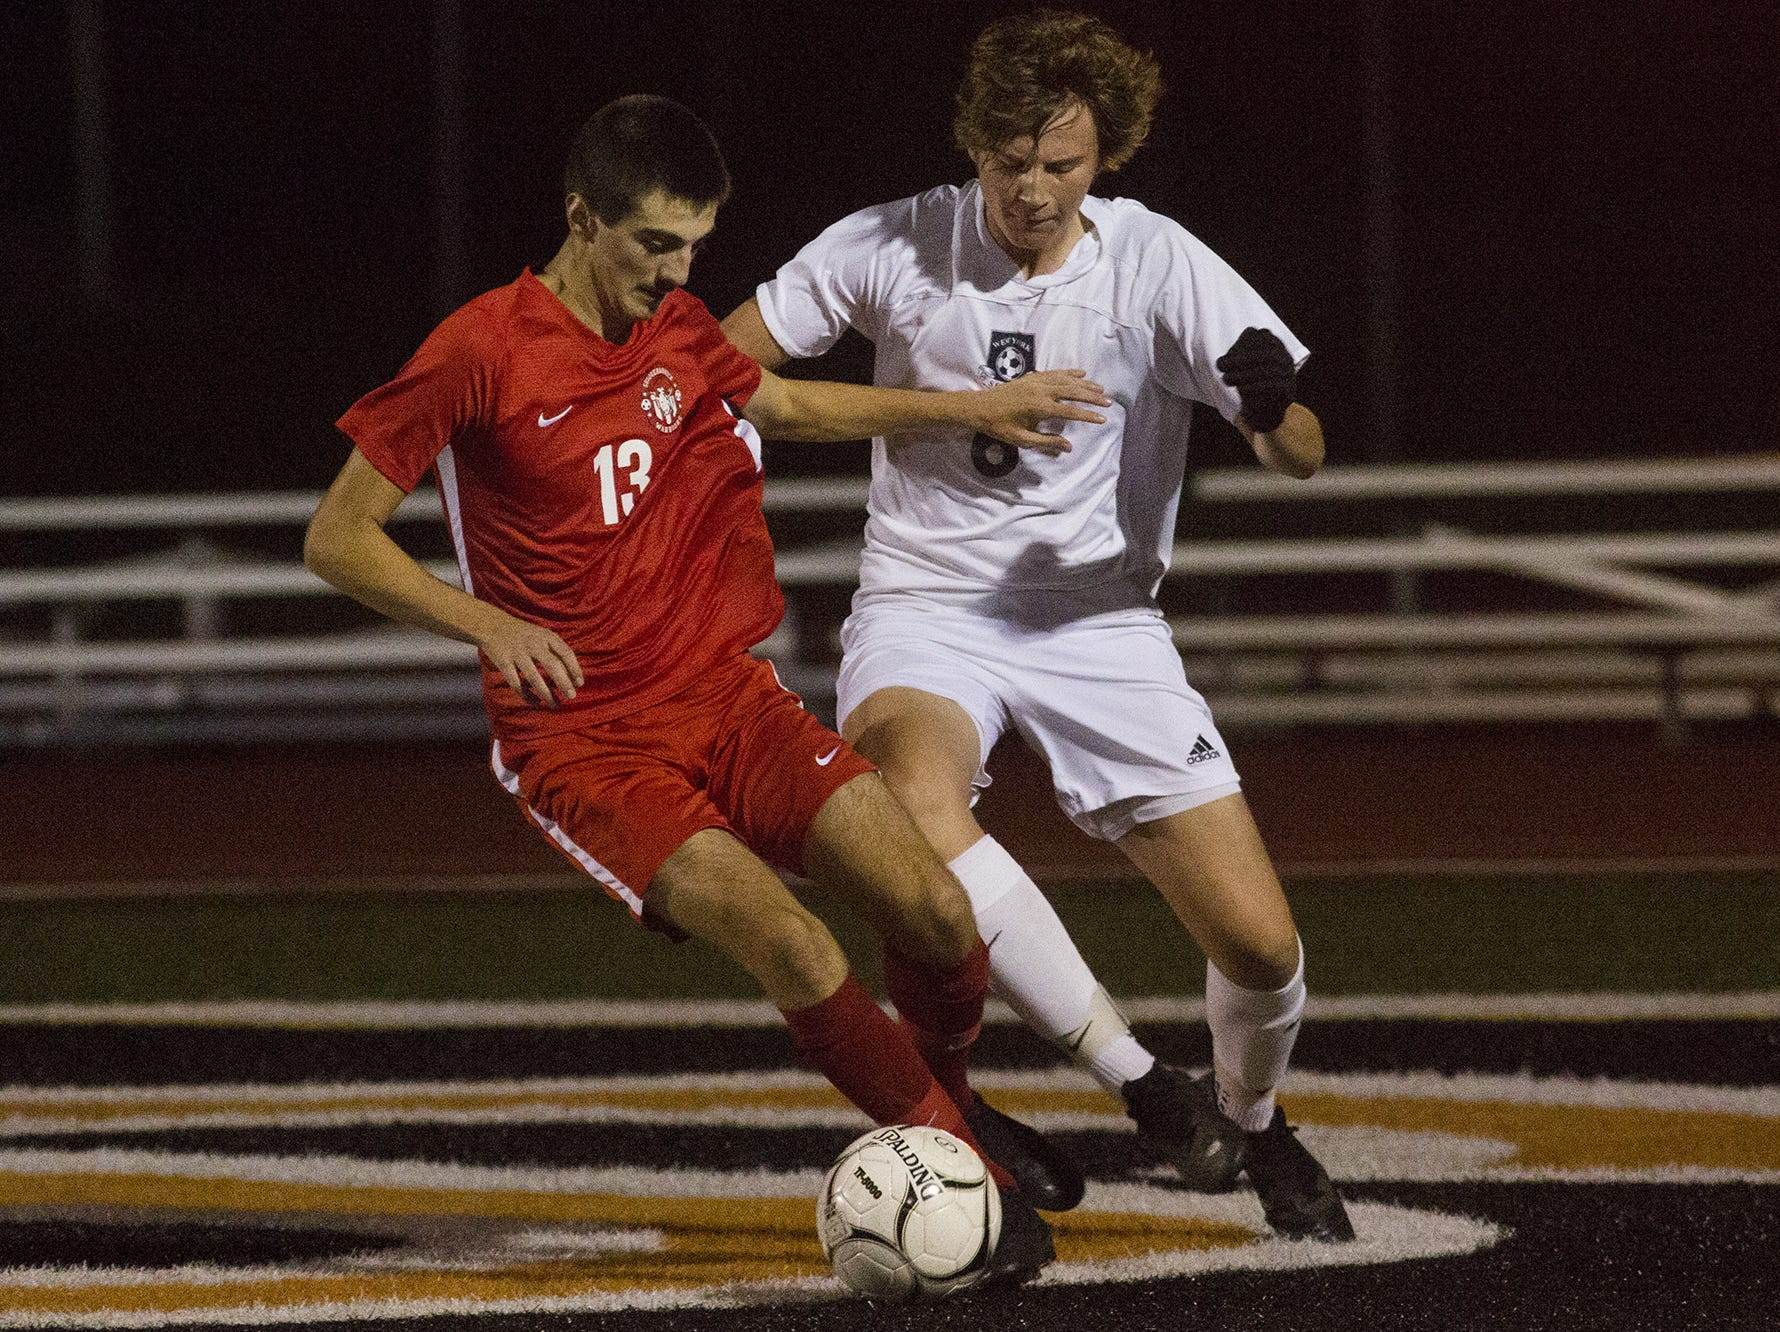 Susquehannock's Nolan Holloway, left, and West York's Jack Langstaff compete for the ball. Susquehannock plays West York in the YAIAA boys' soccer championship game at Northeastern High School in Manchester, Saturday, October 20, 2018.